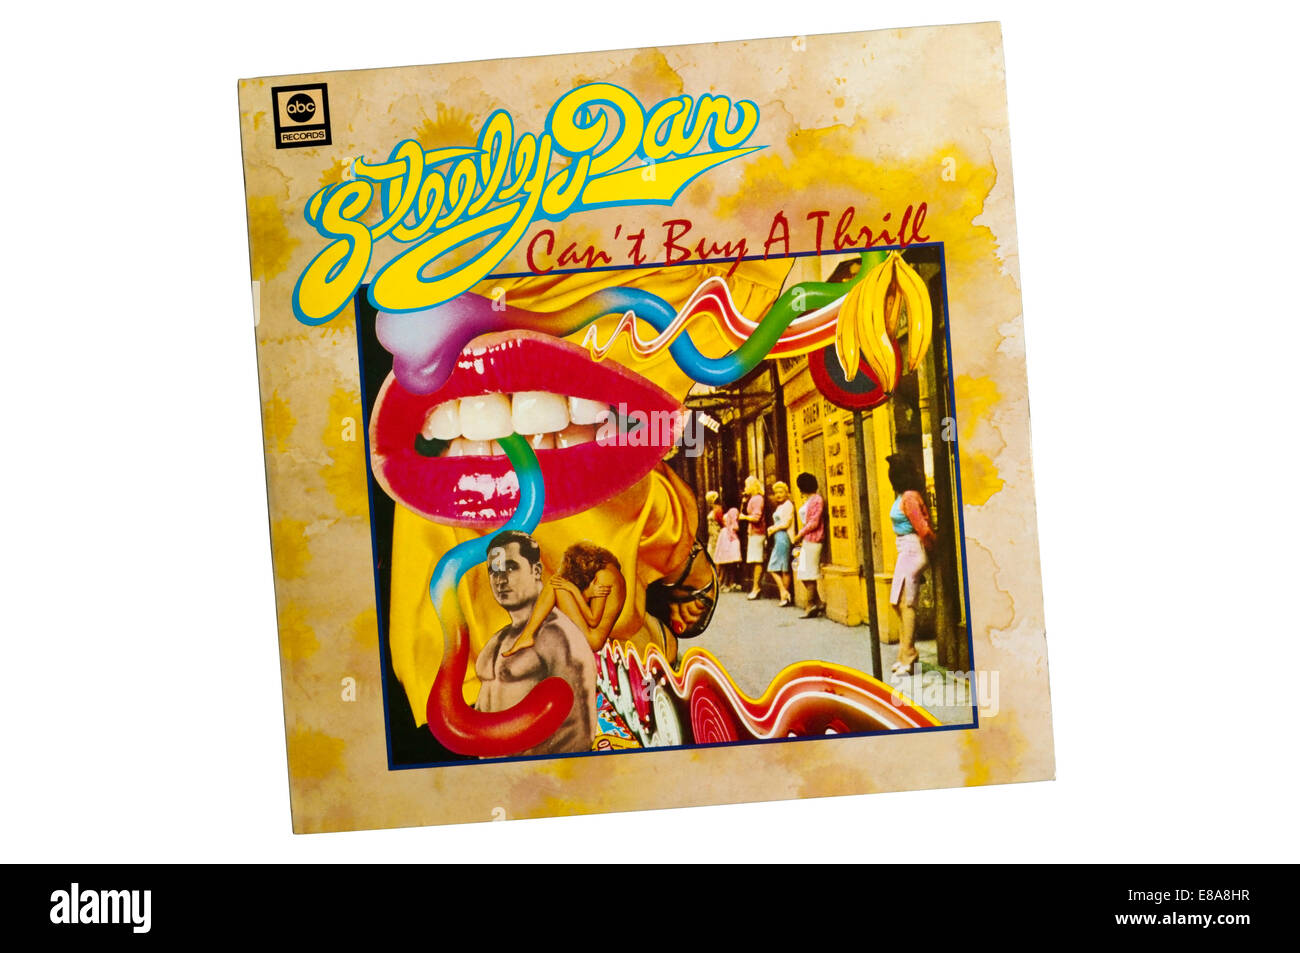 Can't Buy a Thrill was the debut album by American rock band Steely Dan, released in 1972 by ABC Records. - Stock Image